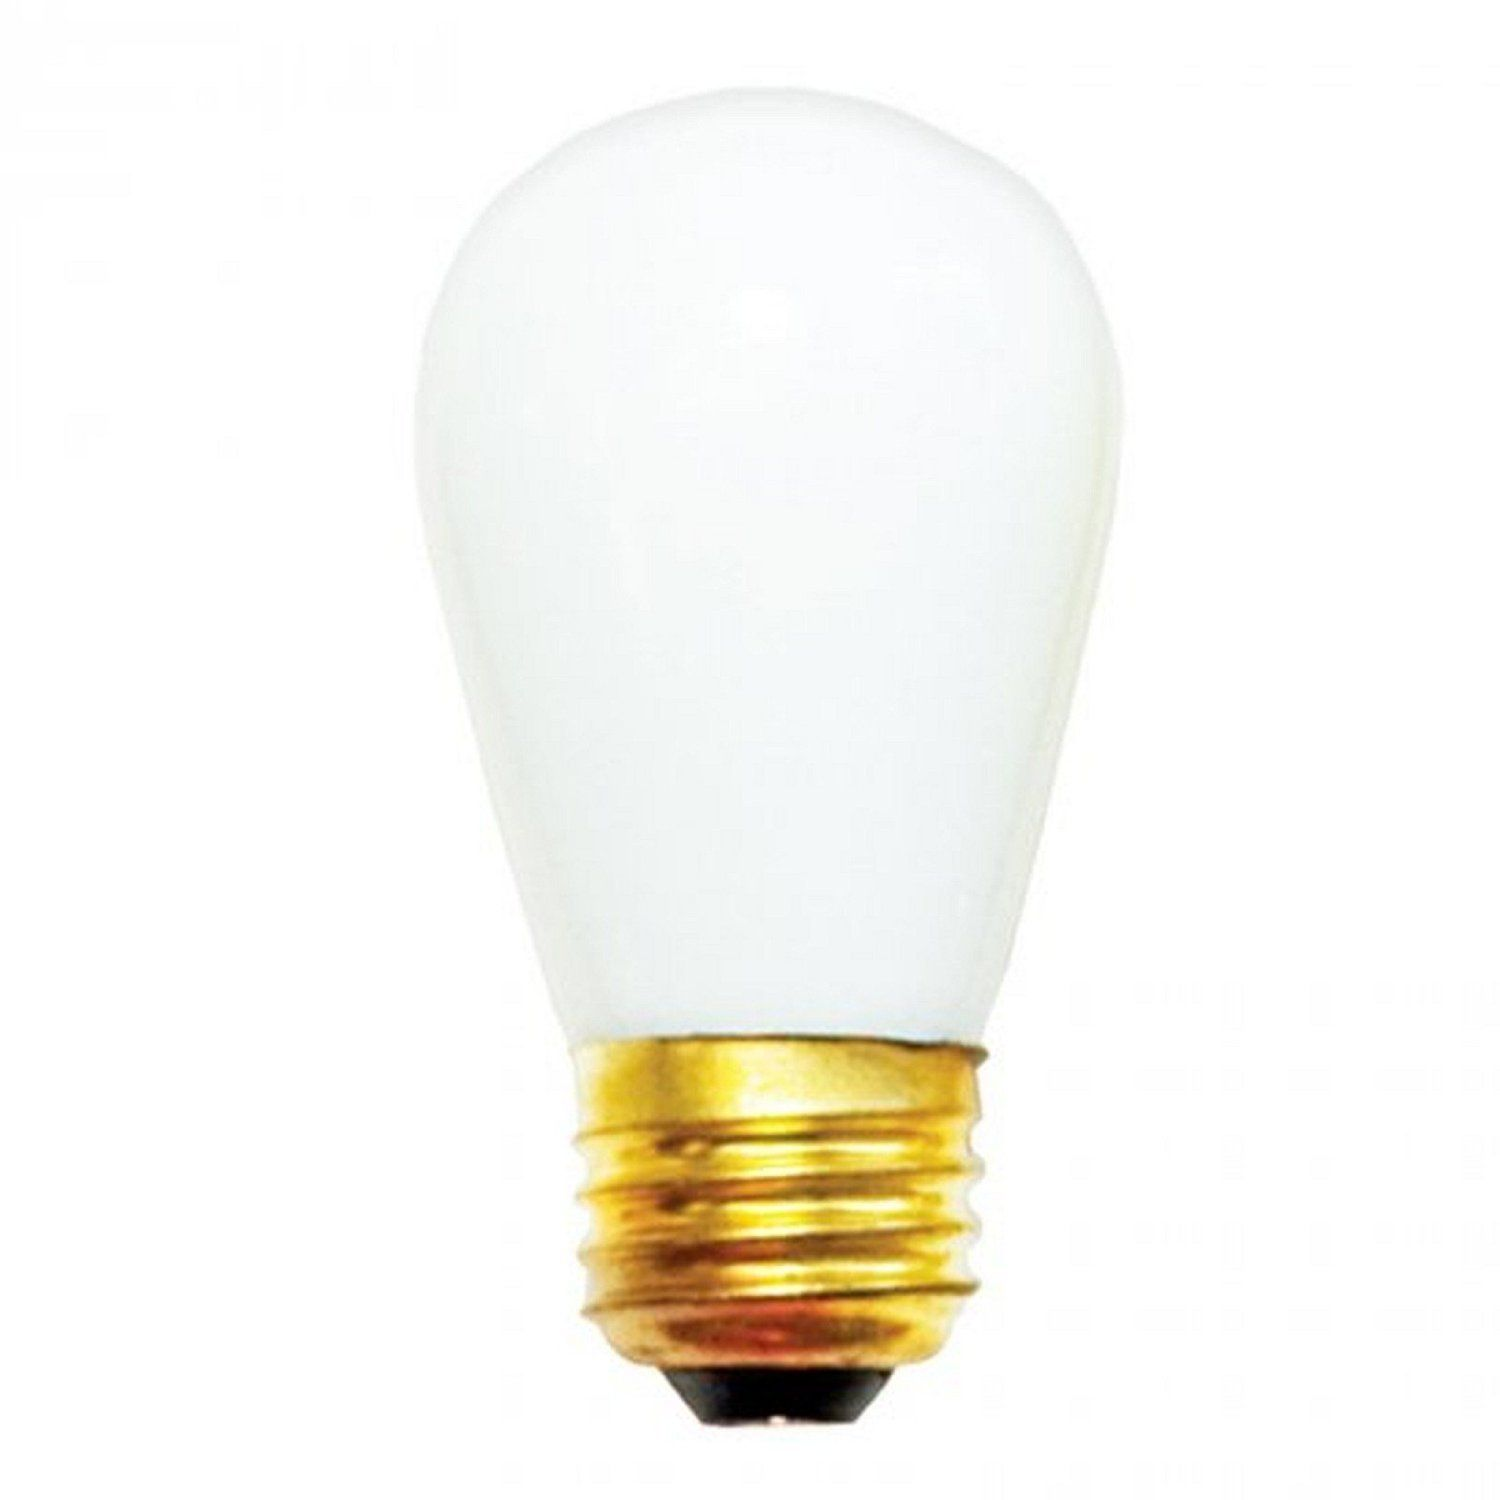 Norman Lamps 11s14130vcwx50 11w Ceramic White Light Bulb 130v Pack Of 50 You Can Discover Even More Information At The Web In 2020 Light Bulb White Light Bulbs Bulb